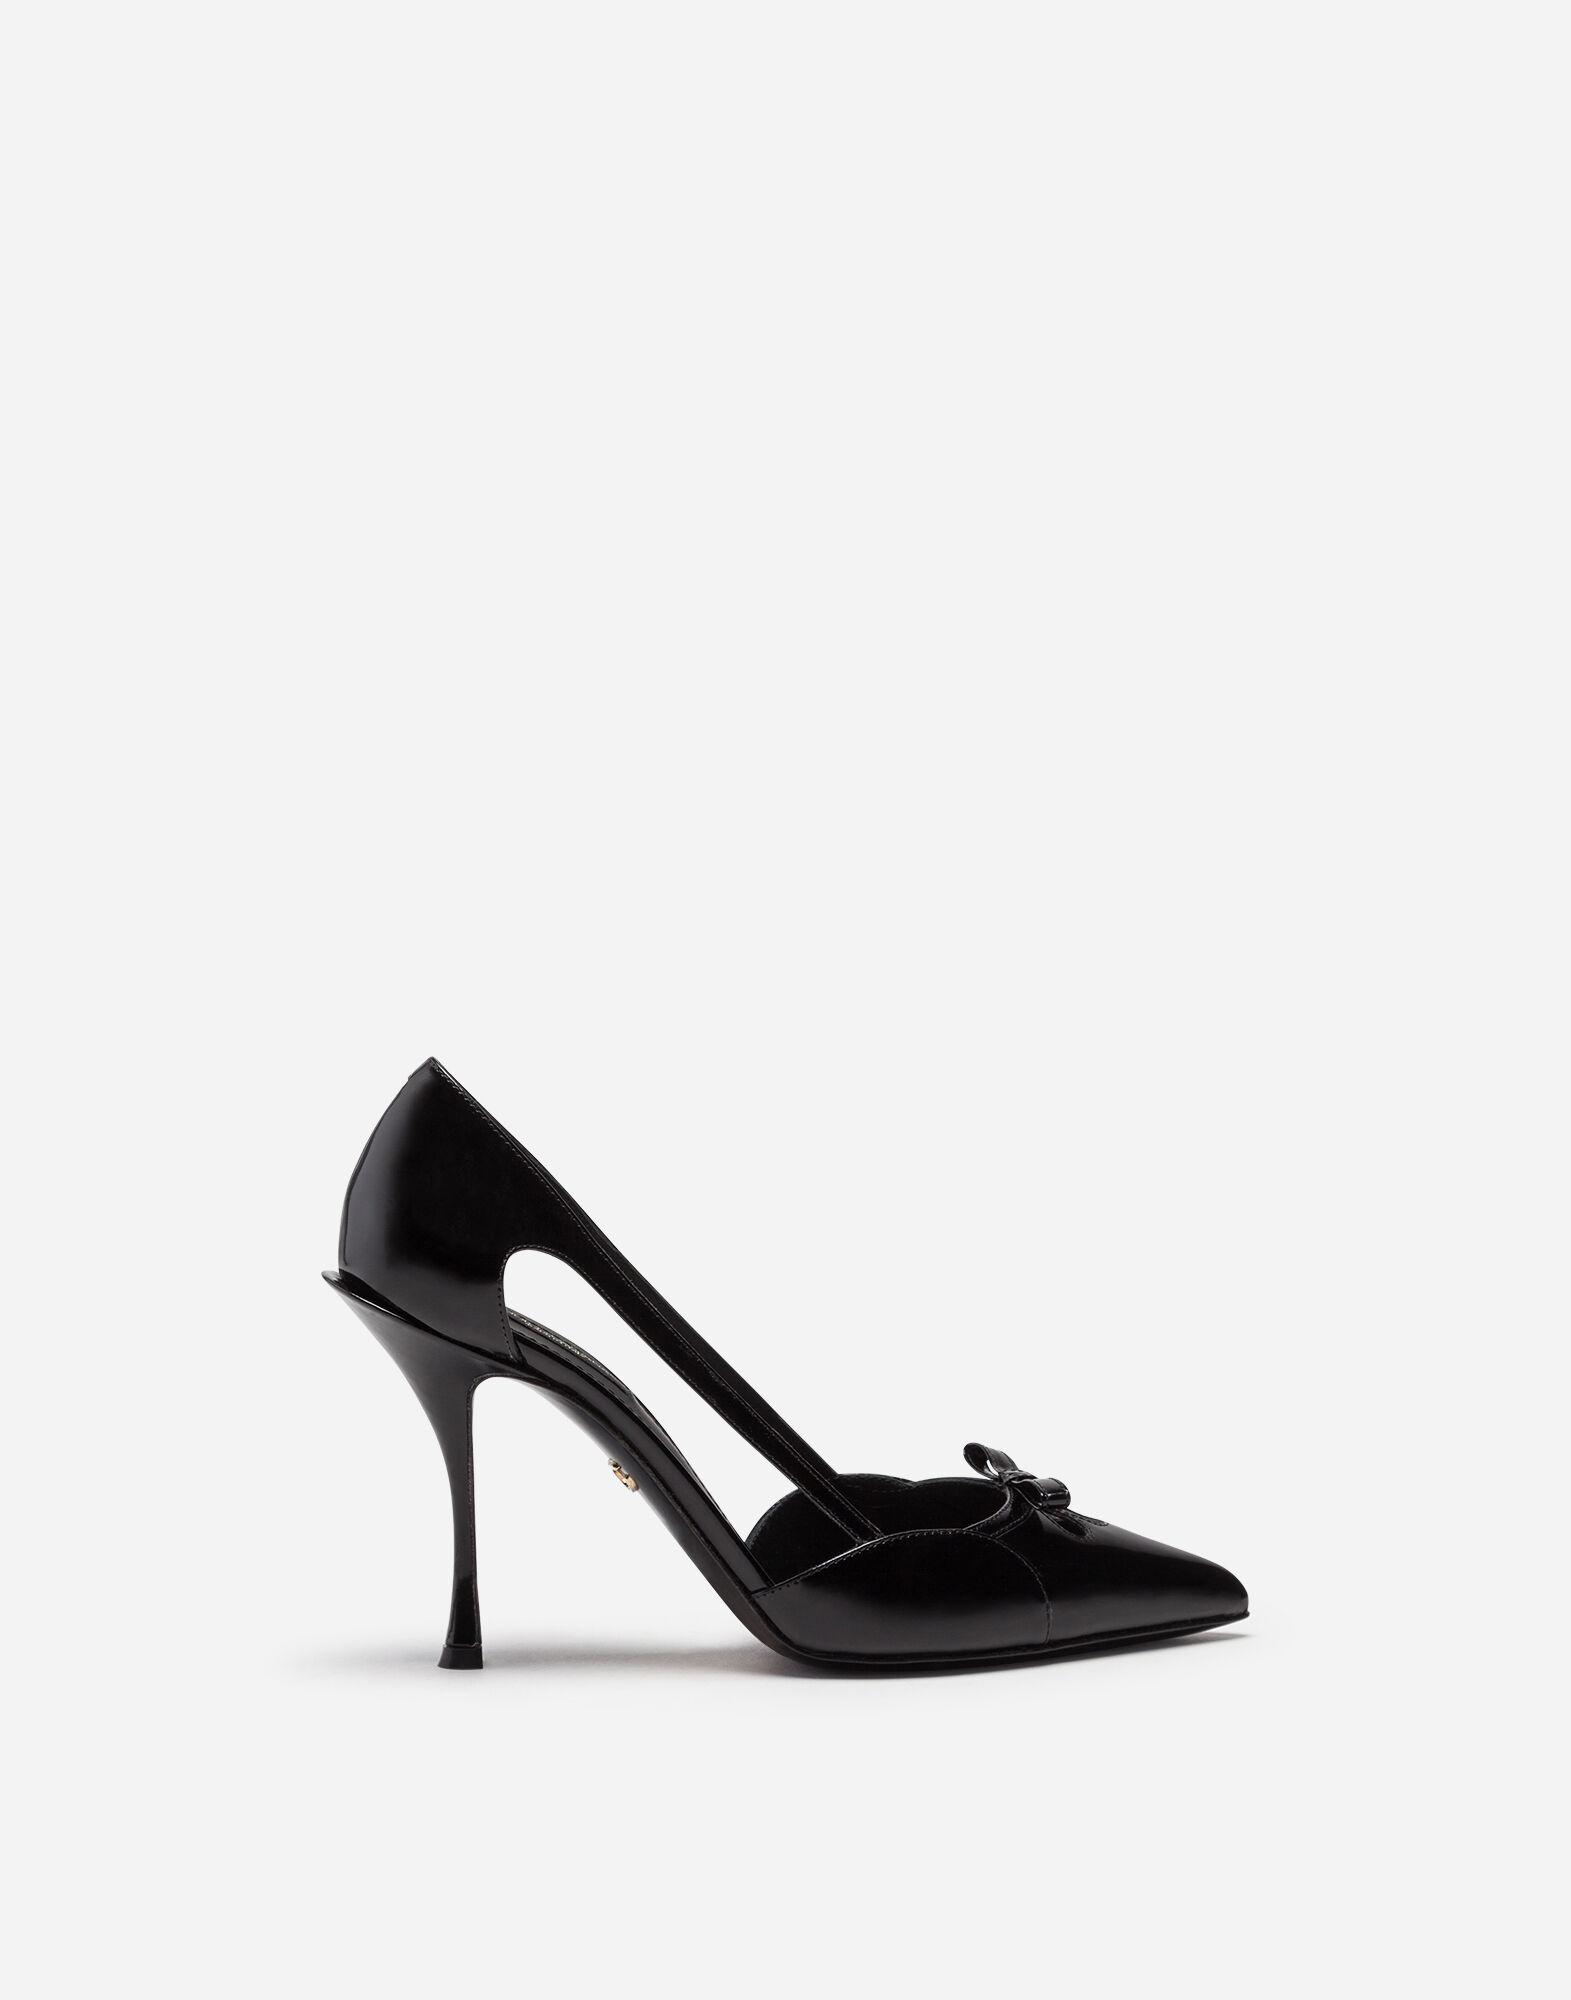 Polished calfskin pumps with bow